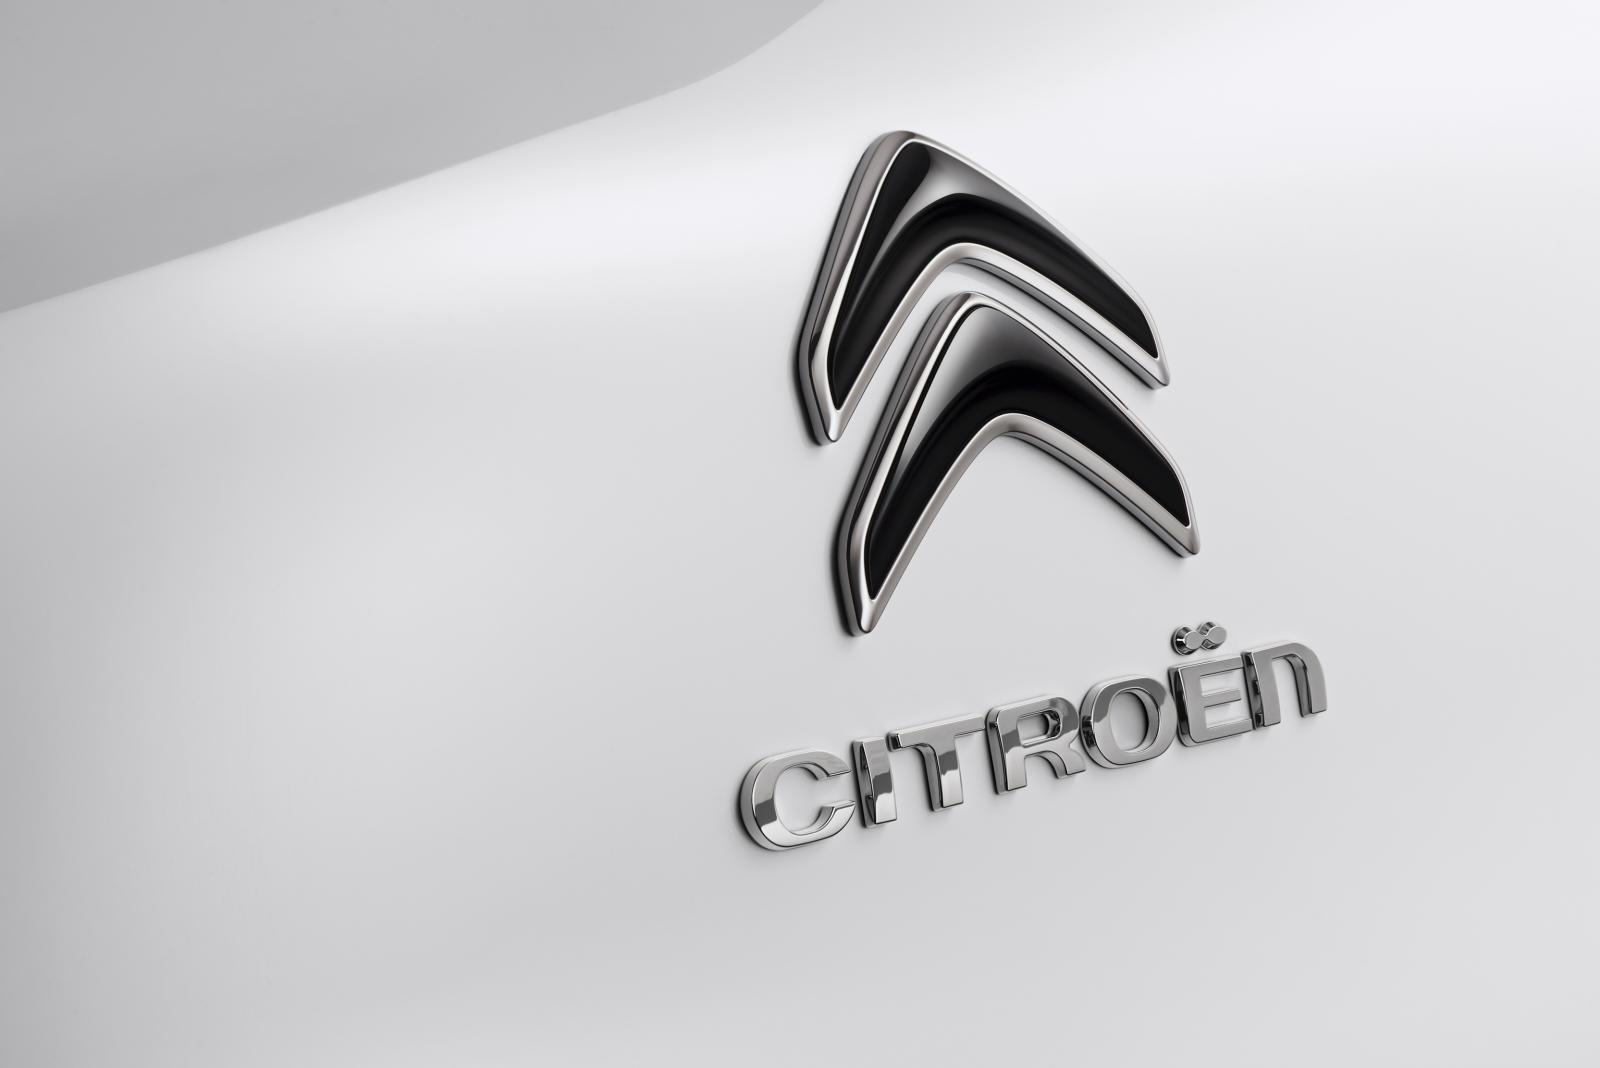 New C3 - Citroën logotipas